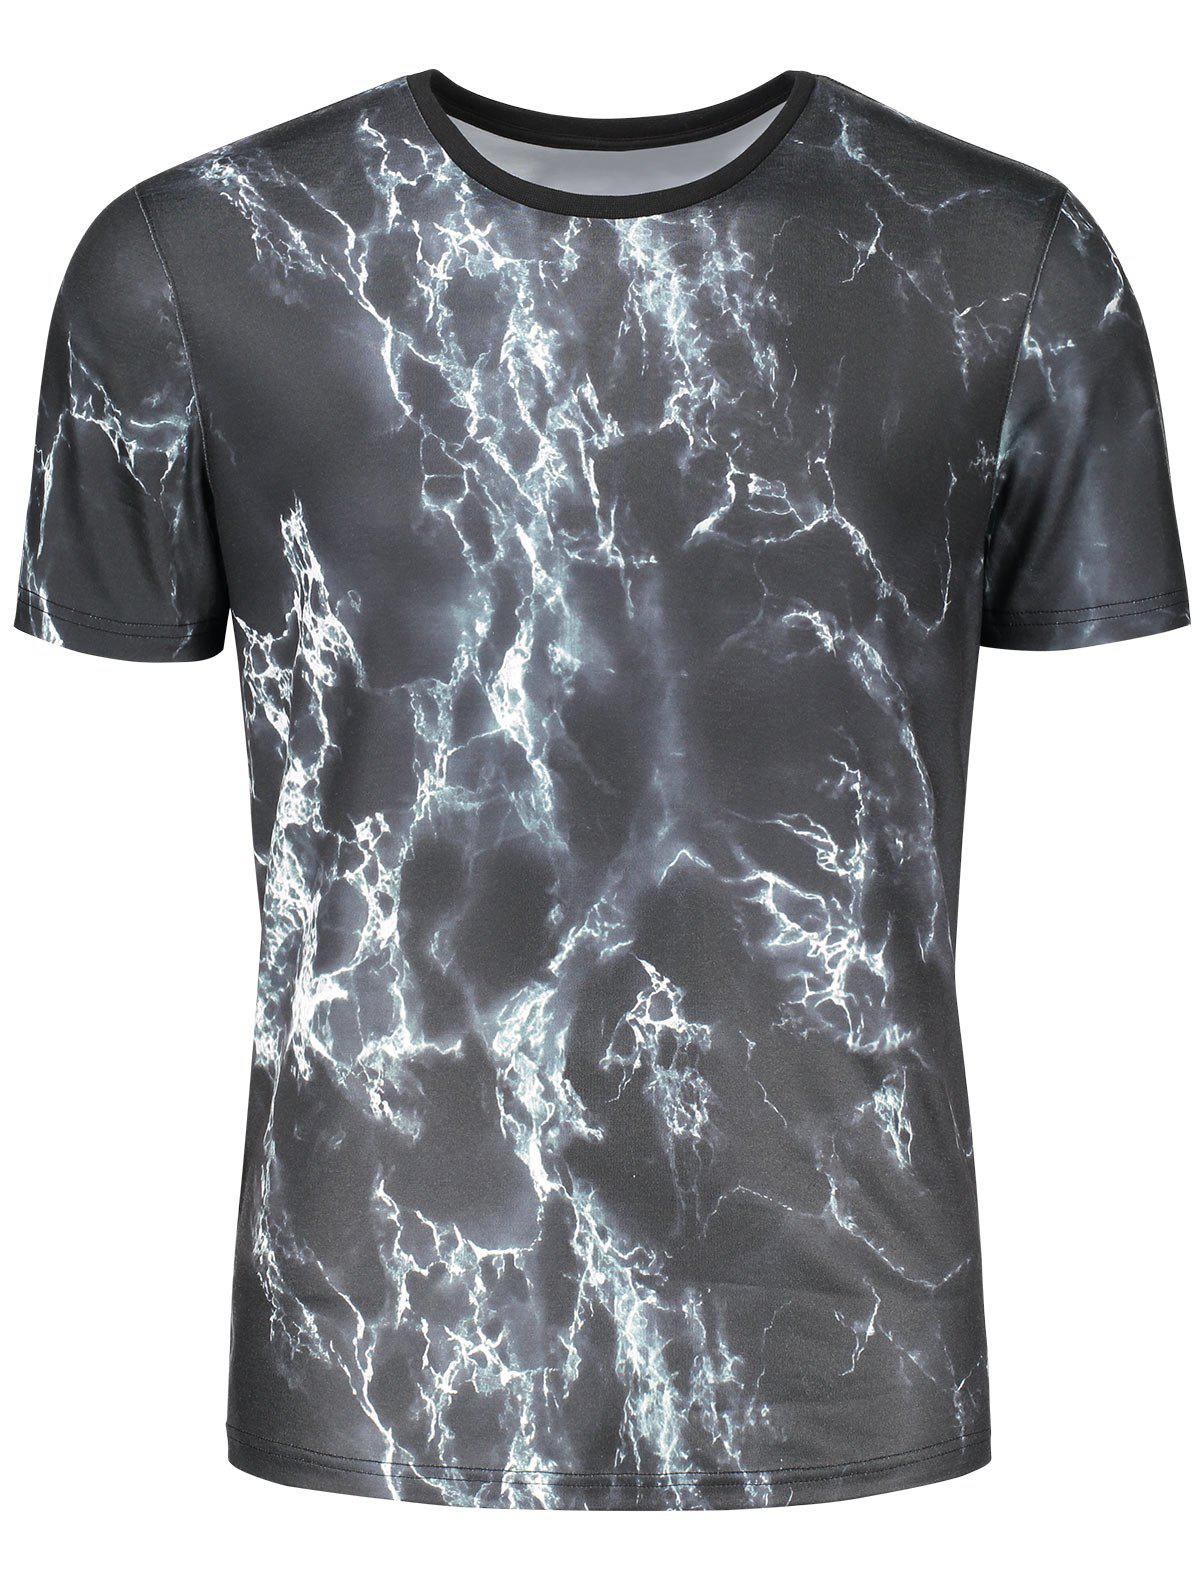 T-shirt à manches courtes 3D Lightning Print - multicolore XL